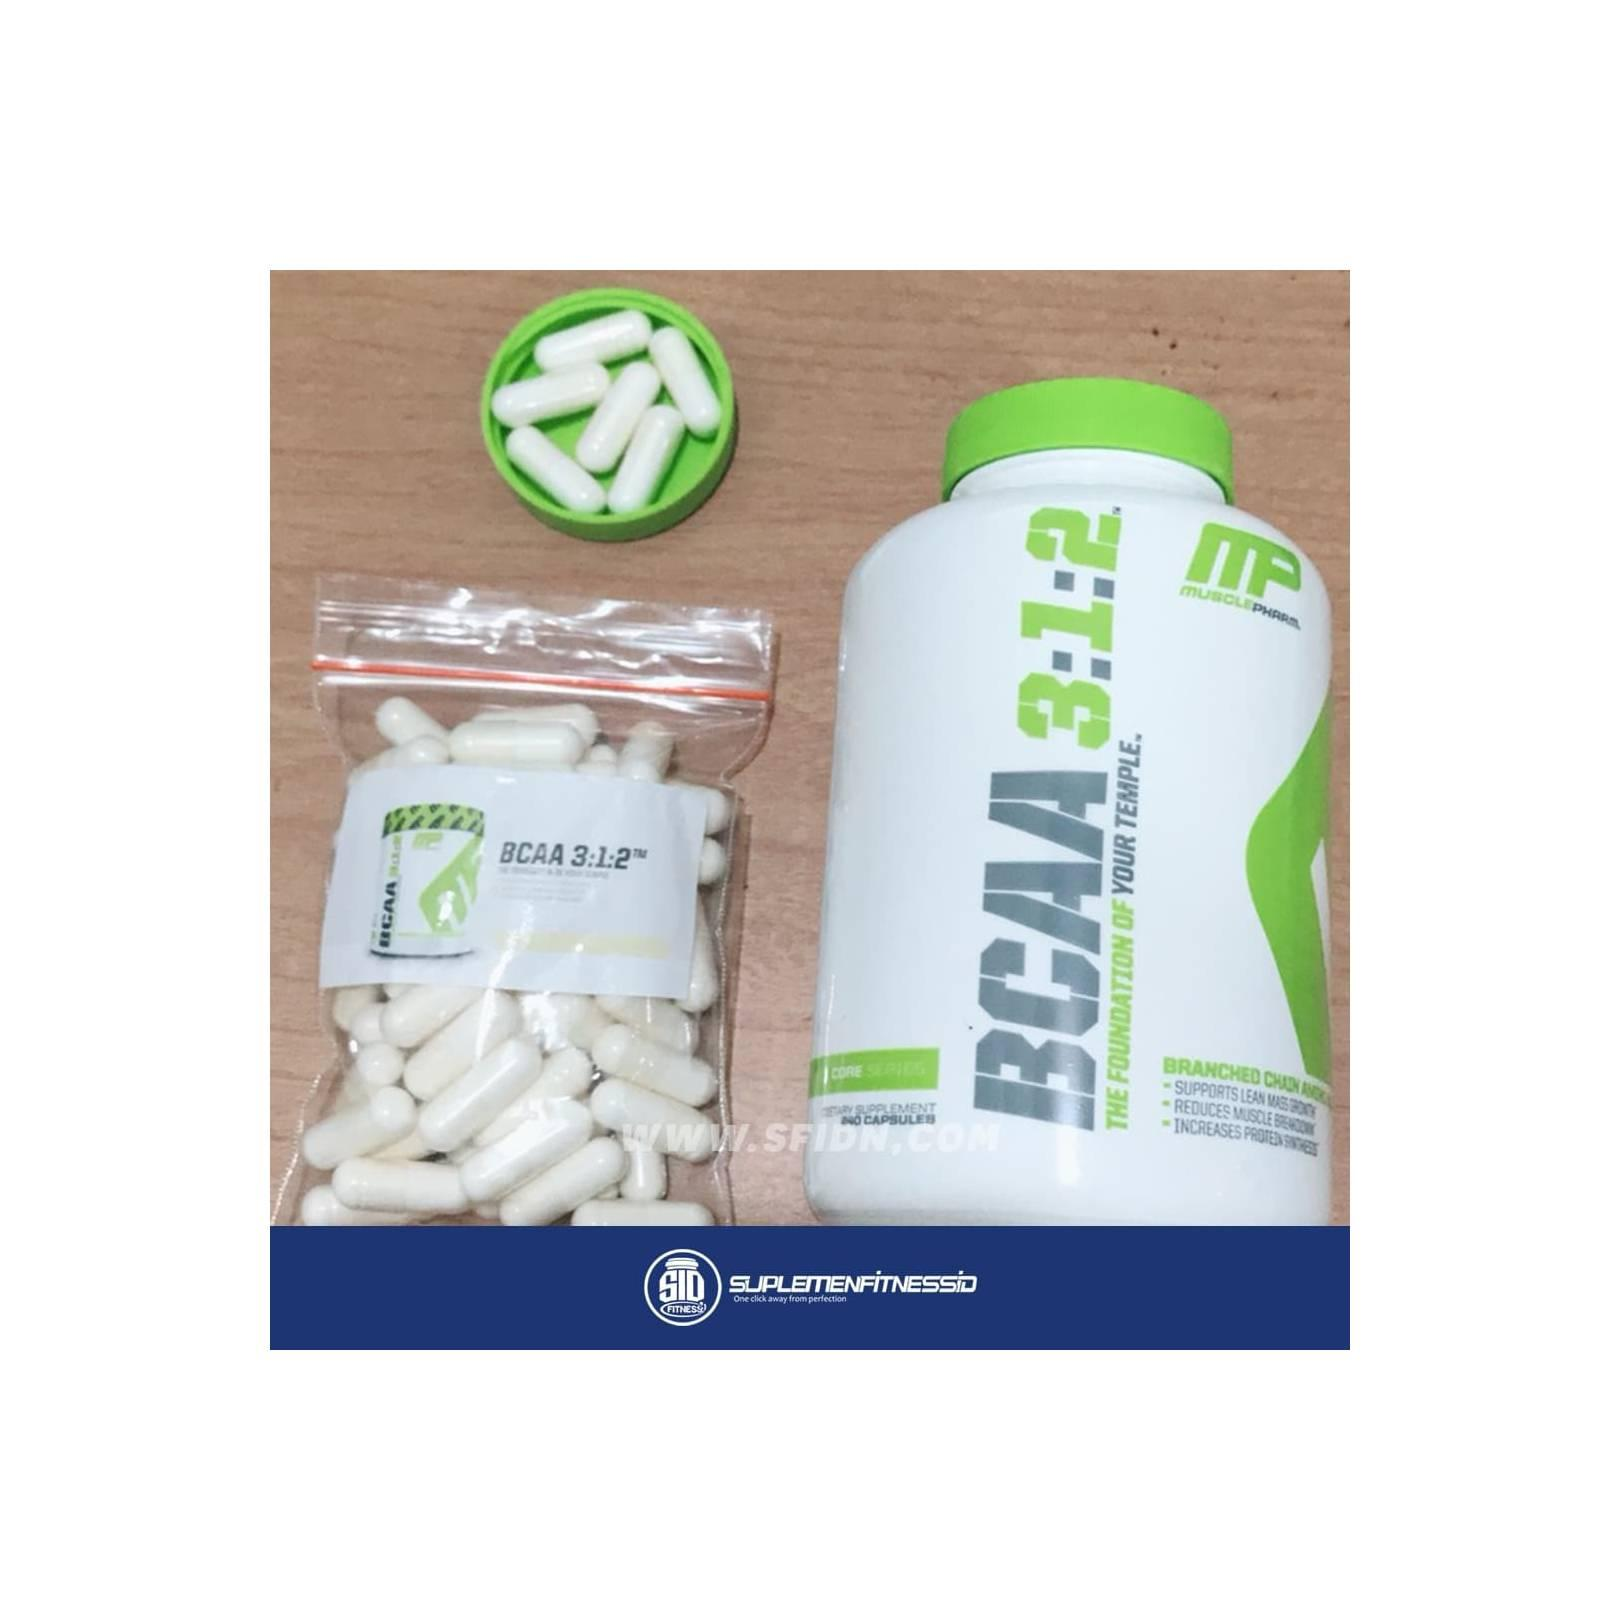 CAPS Suplemenstore com Source · Musclepharm bcaa MP Bcaa 100 Tabs Eceran Repack .